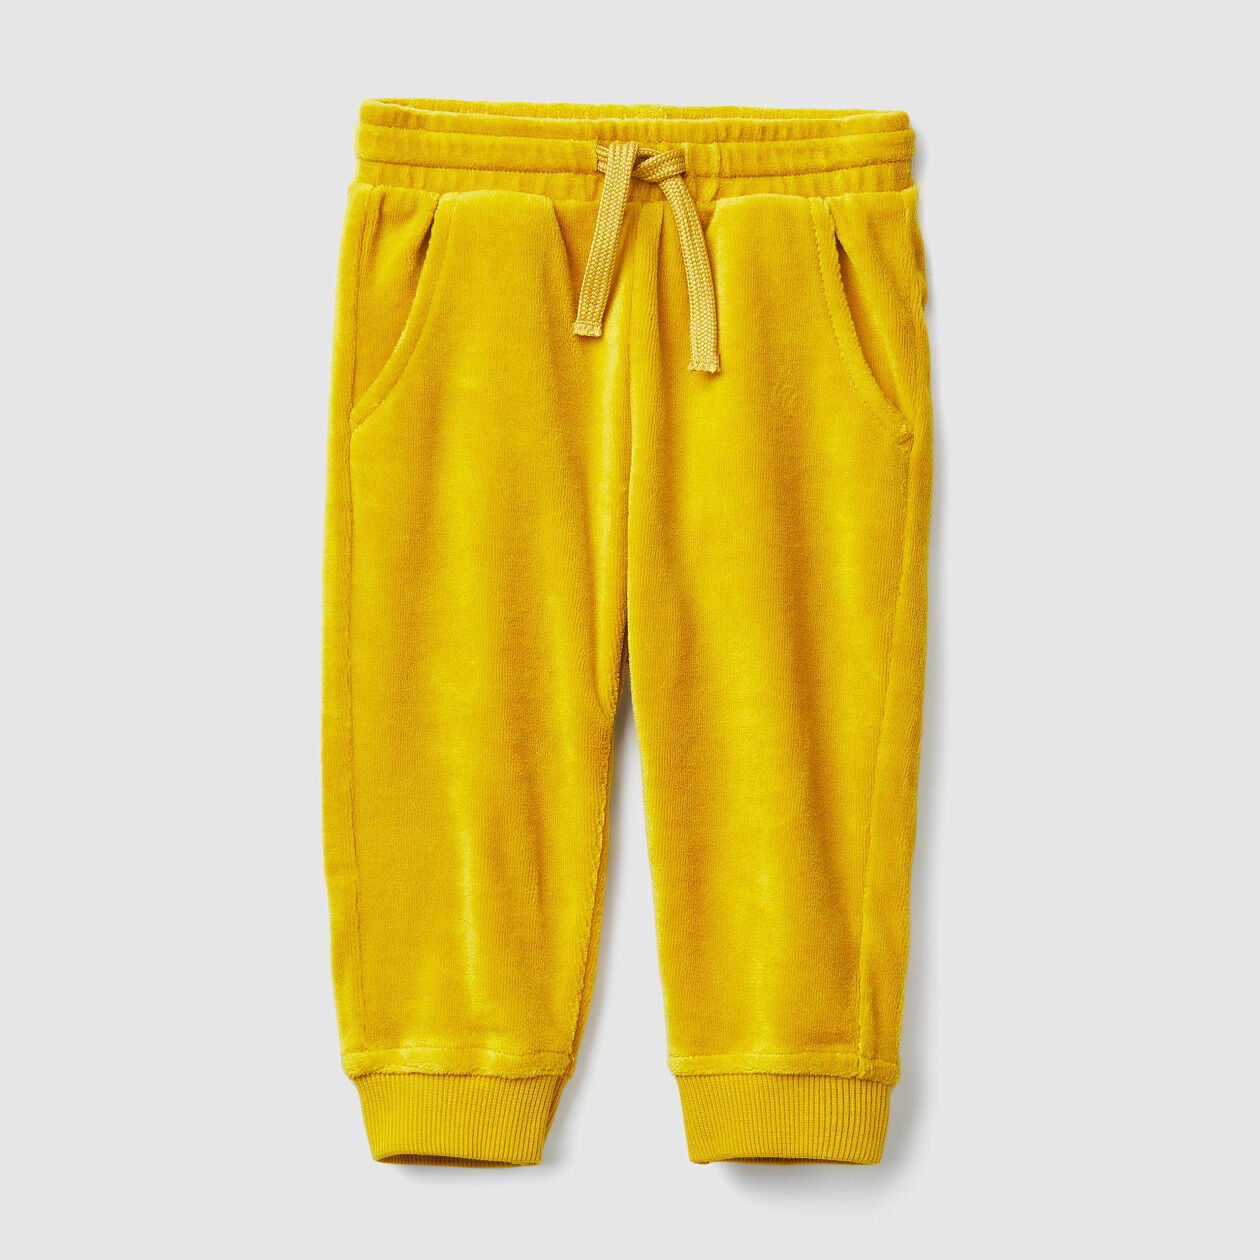 Chenille trousers